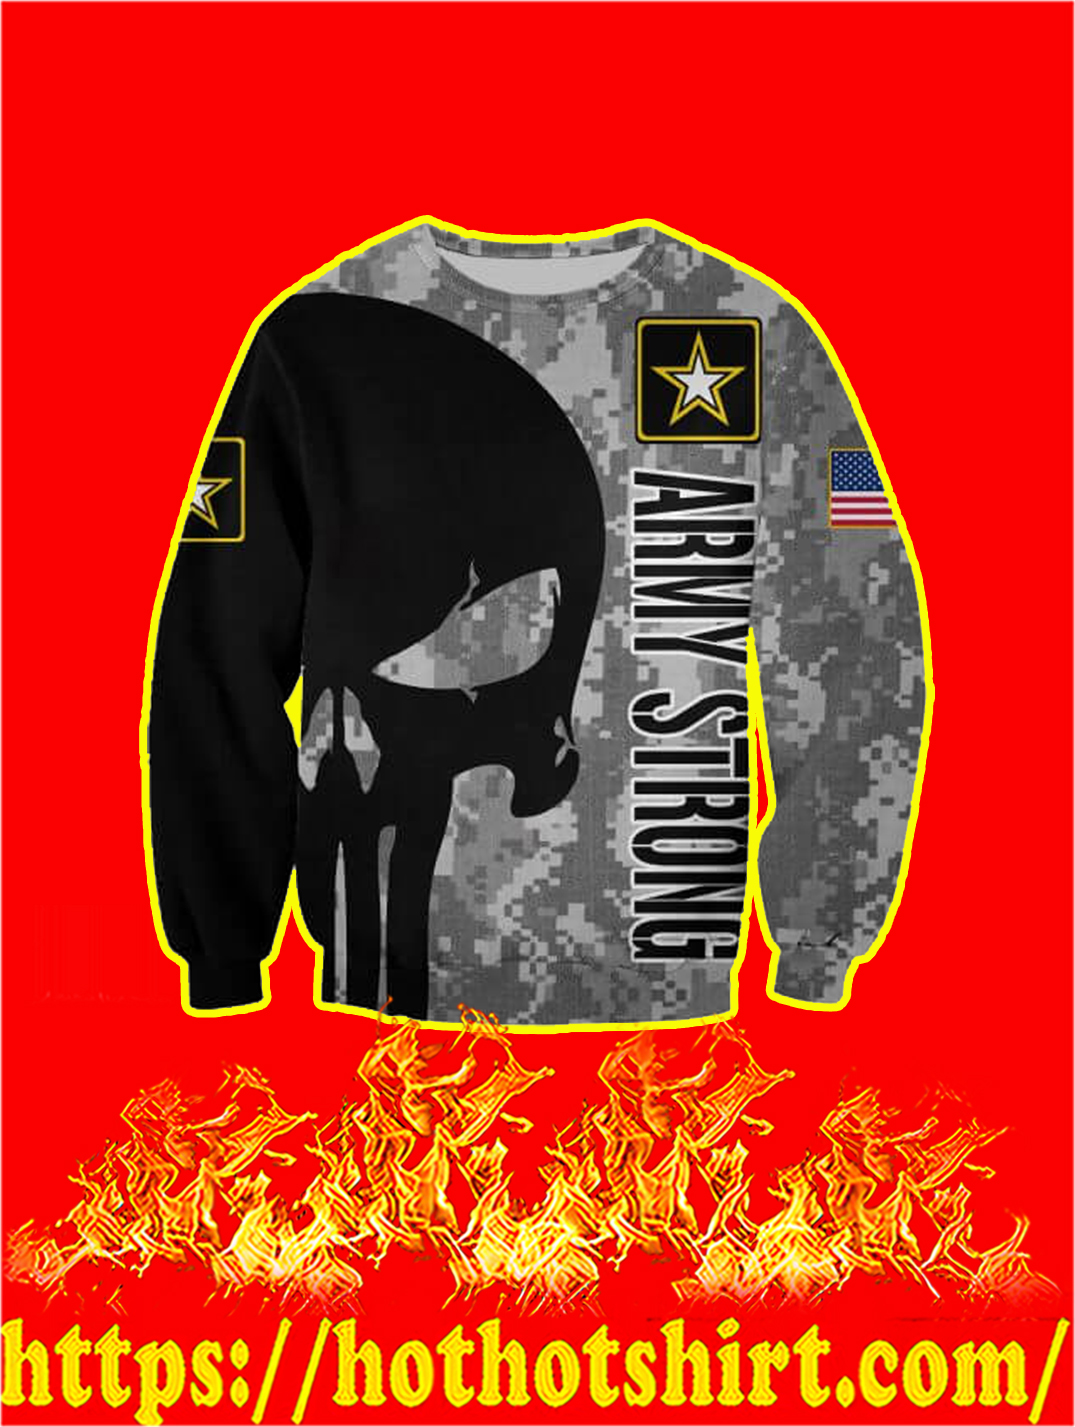 3D Printed US Army Strong Punisher Skull Sweatshirt